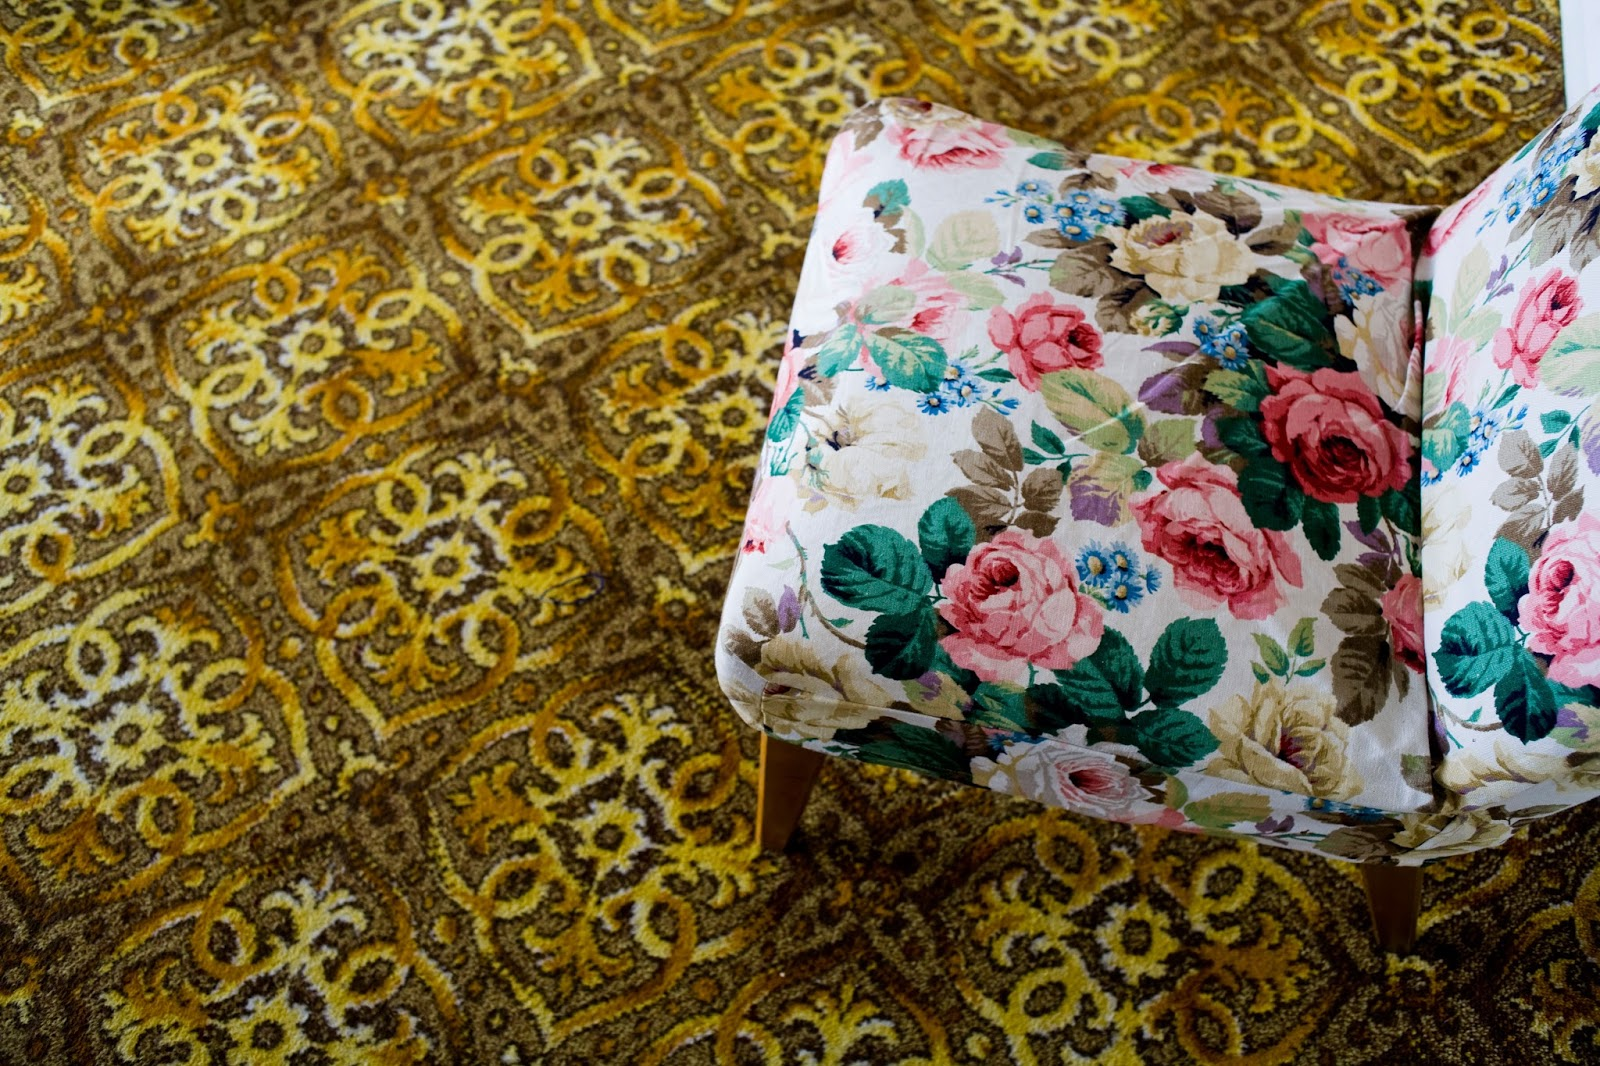 Floral patterned chair on heavily patterned carpet